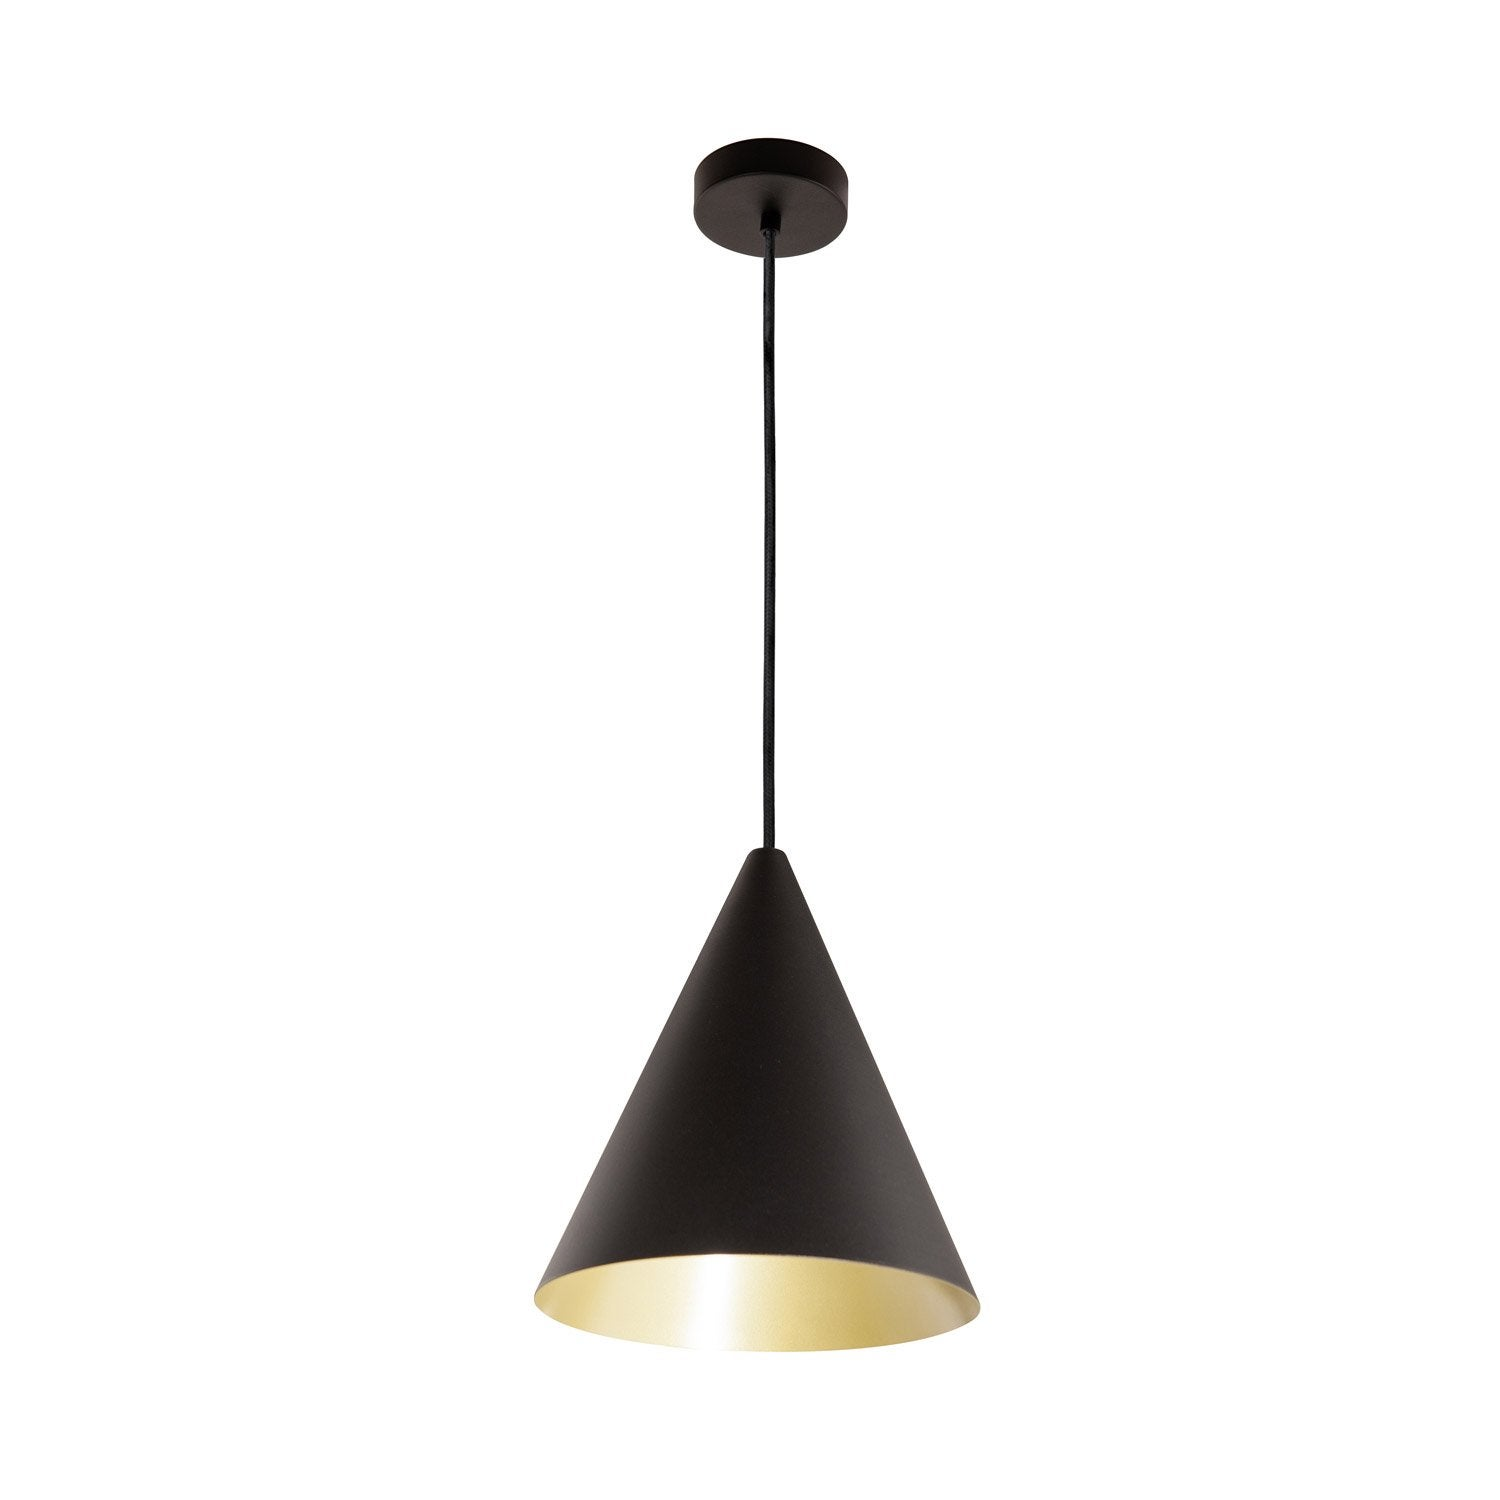 Suspension design rubio m tal noir or 1 x 60 w eglo leroy merlin - Suspension new york leroy merlin ...